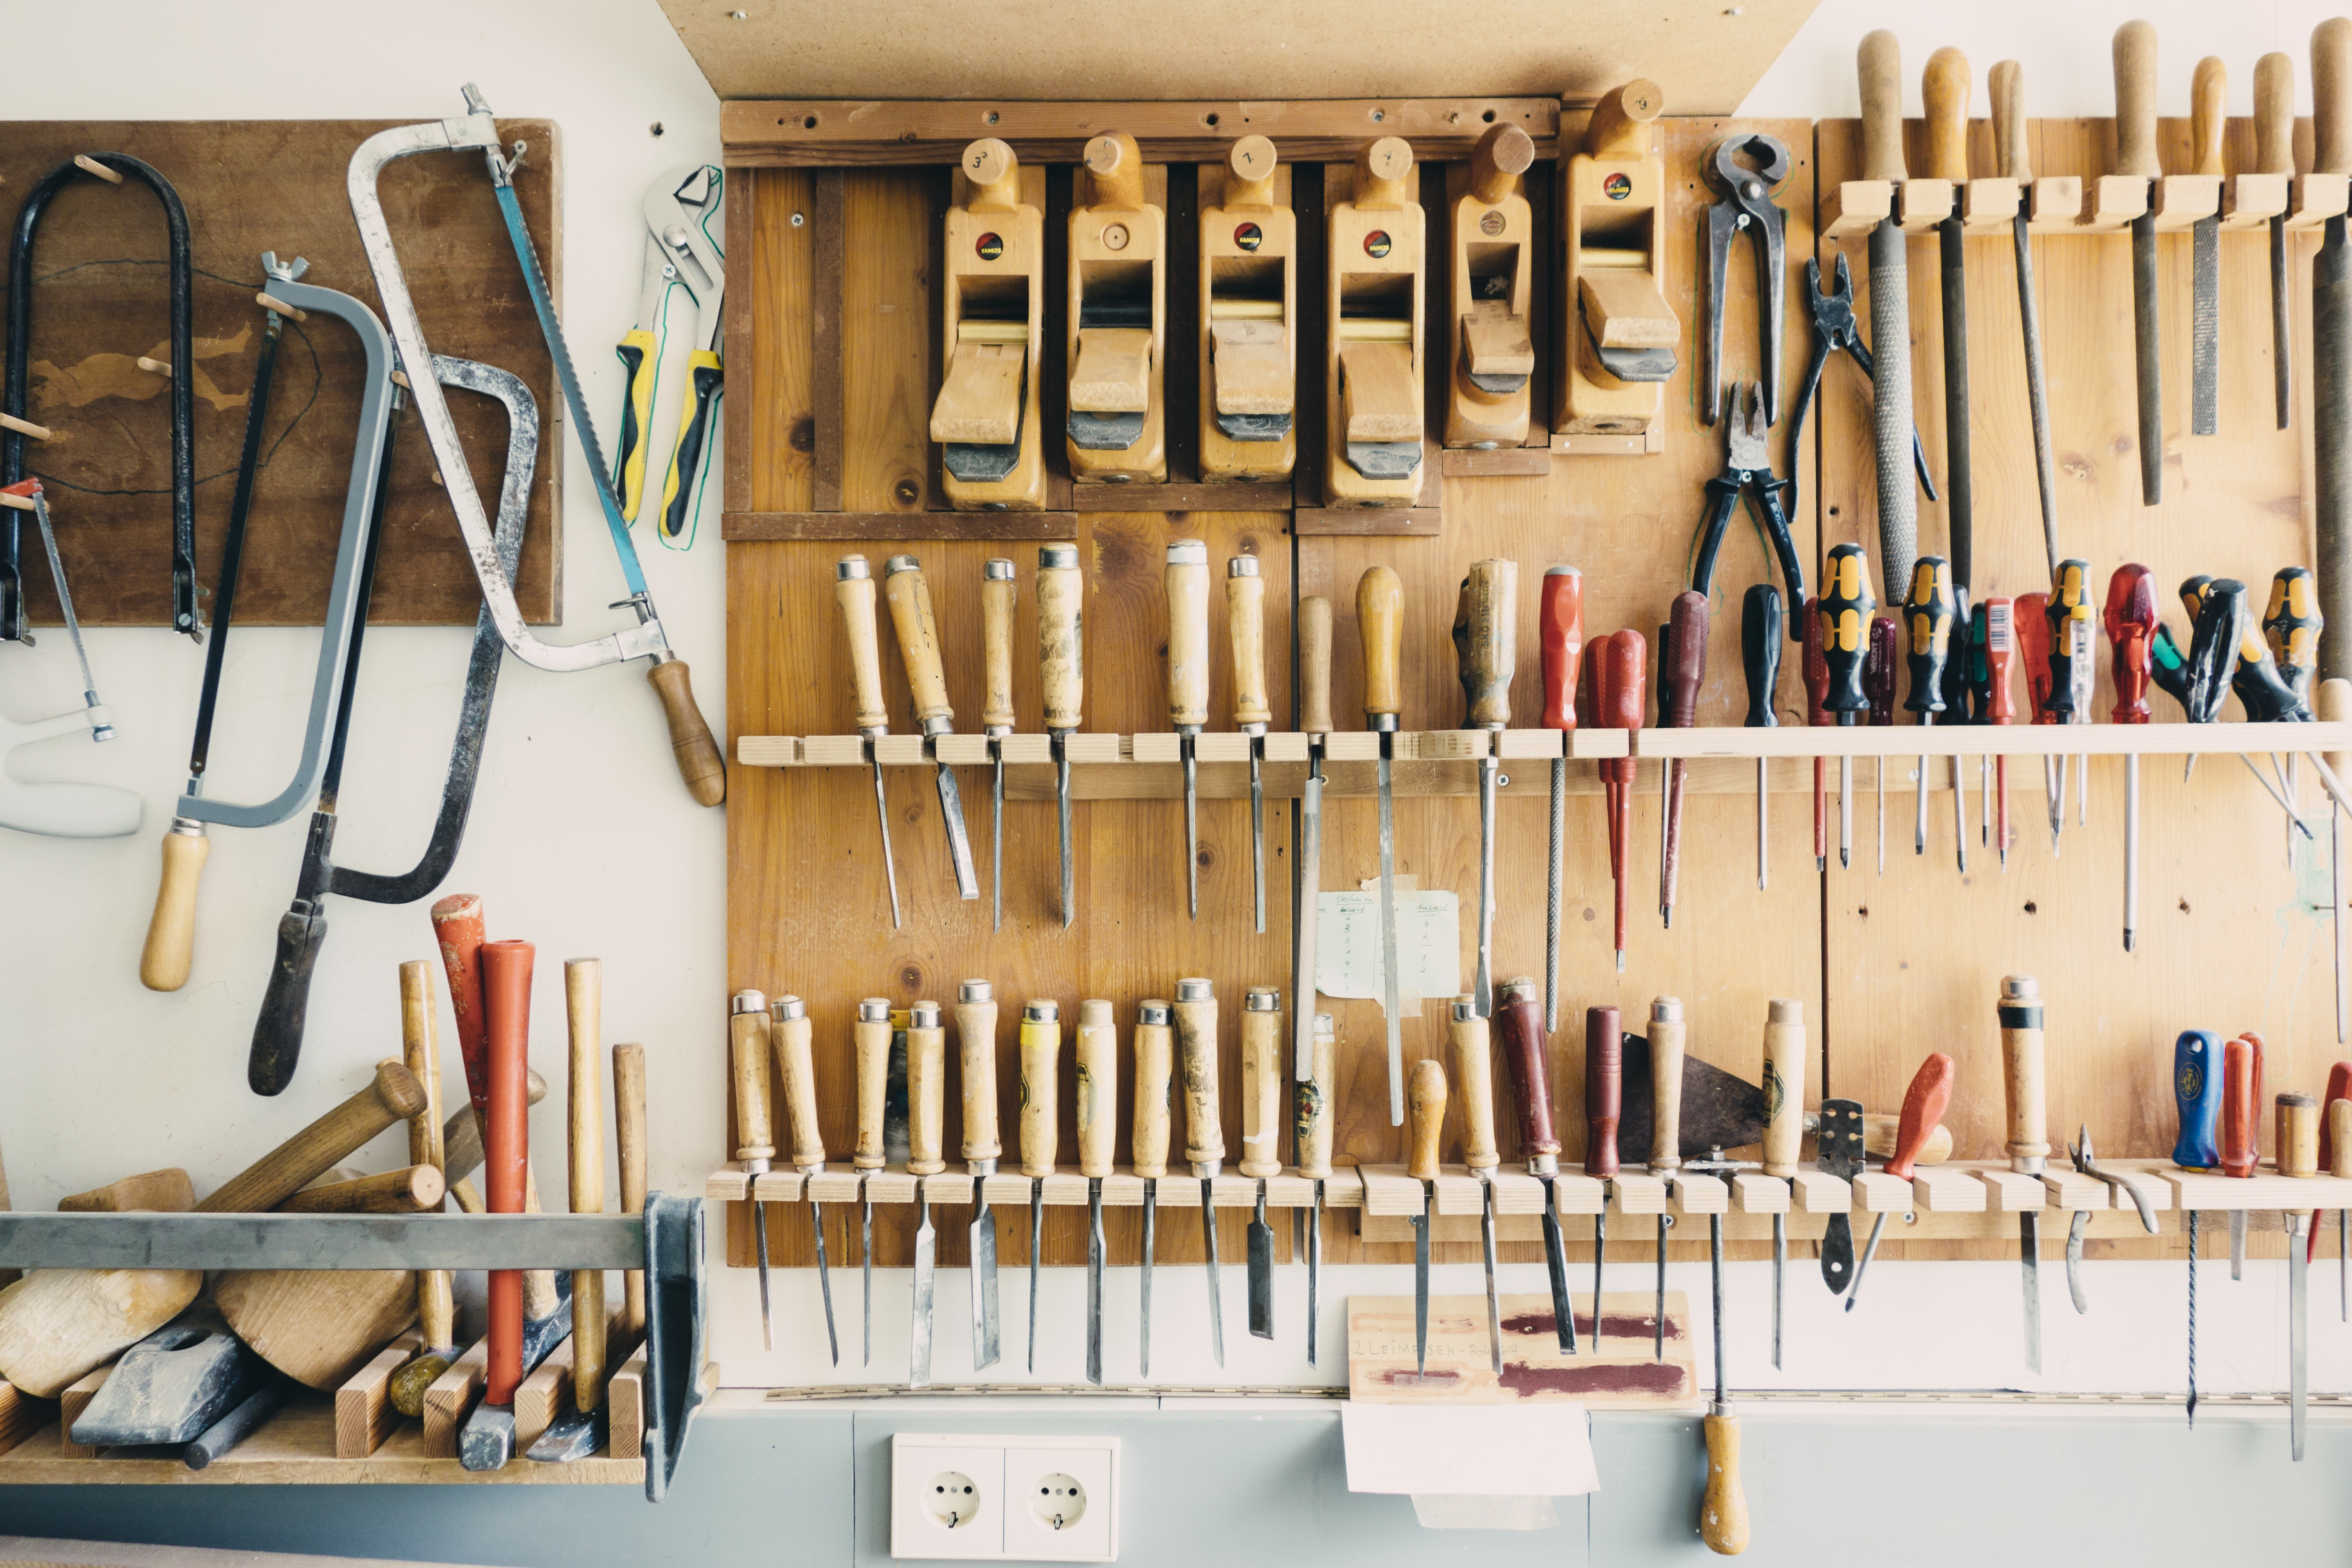 knowing how to use tools can help you save money